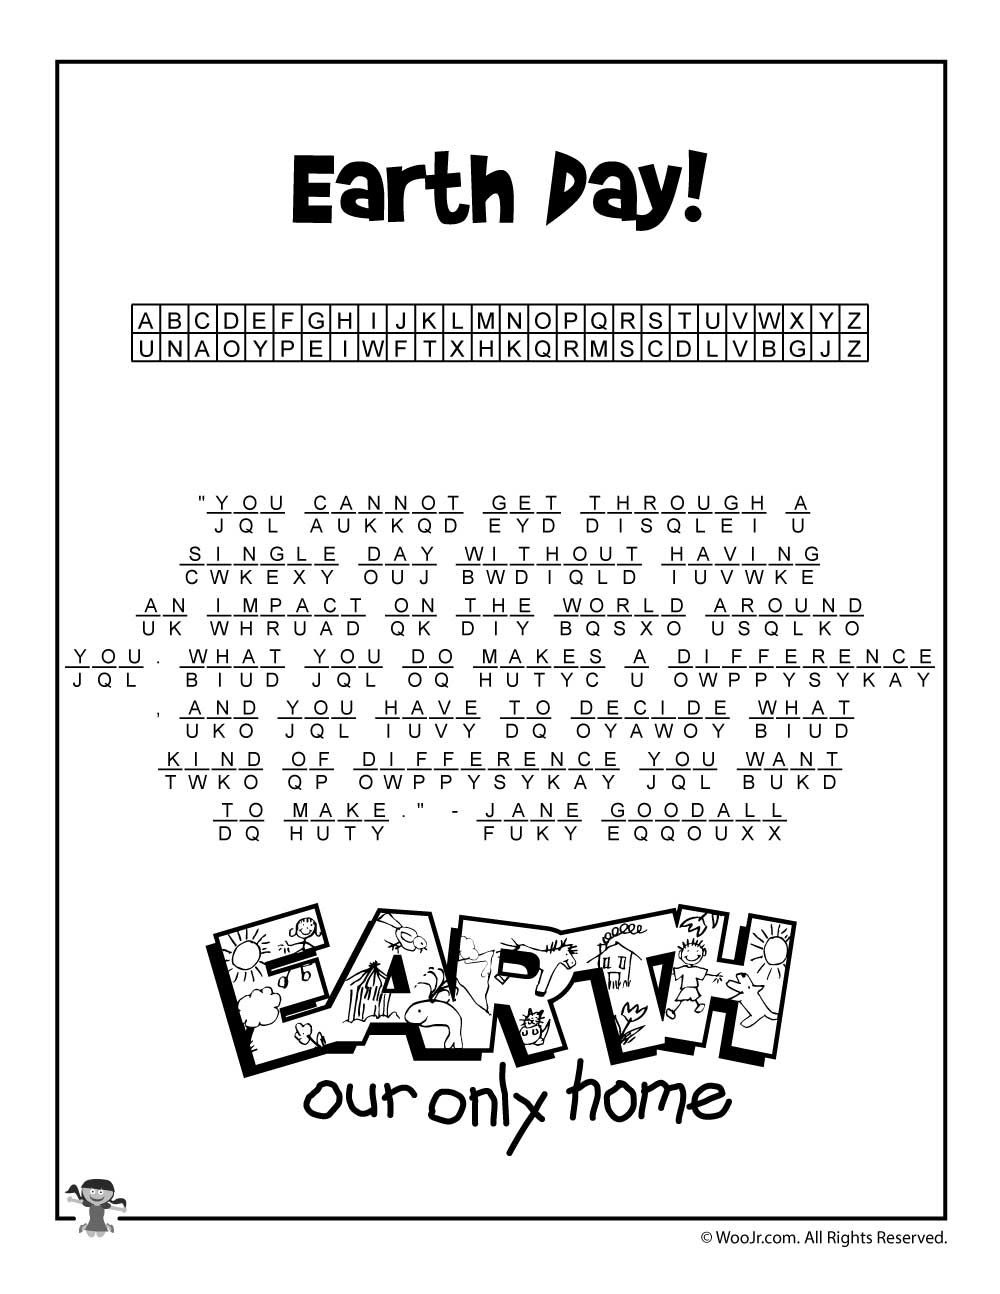 Earth Day Cryptogram Puzzle Solution | Class Decorations | Earth Day - Free Printable Cryptograms With Answers